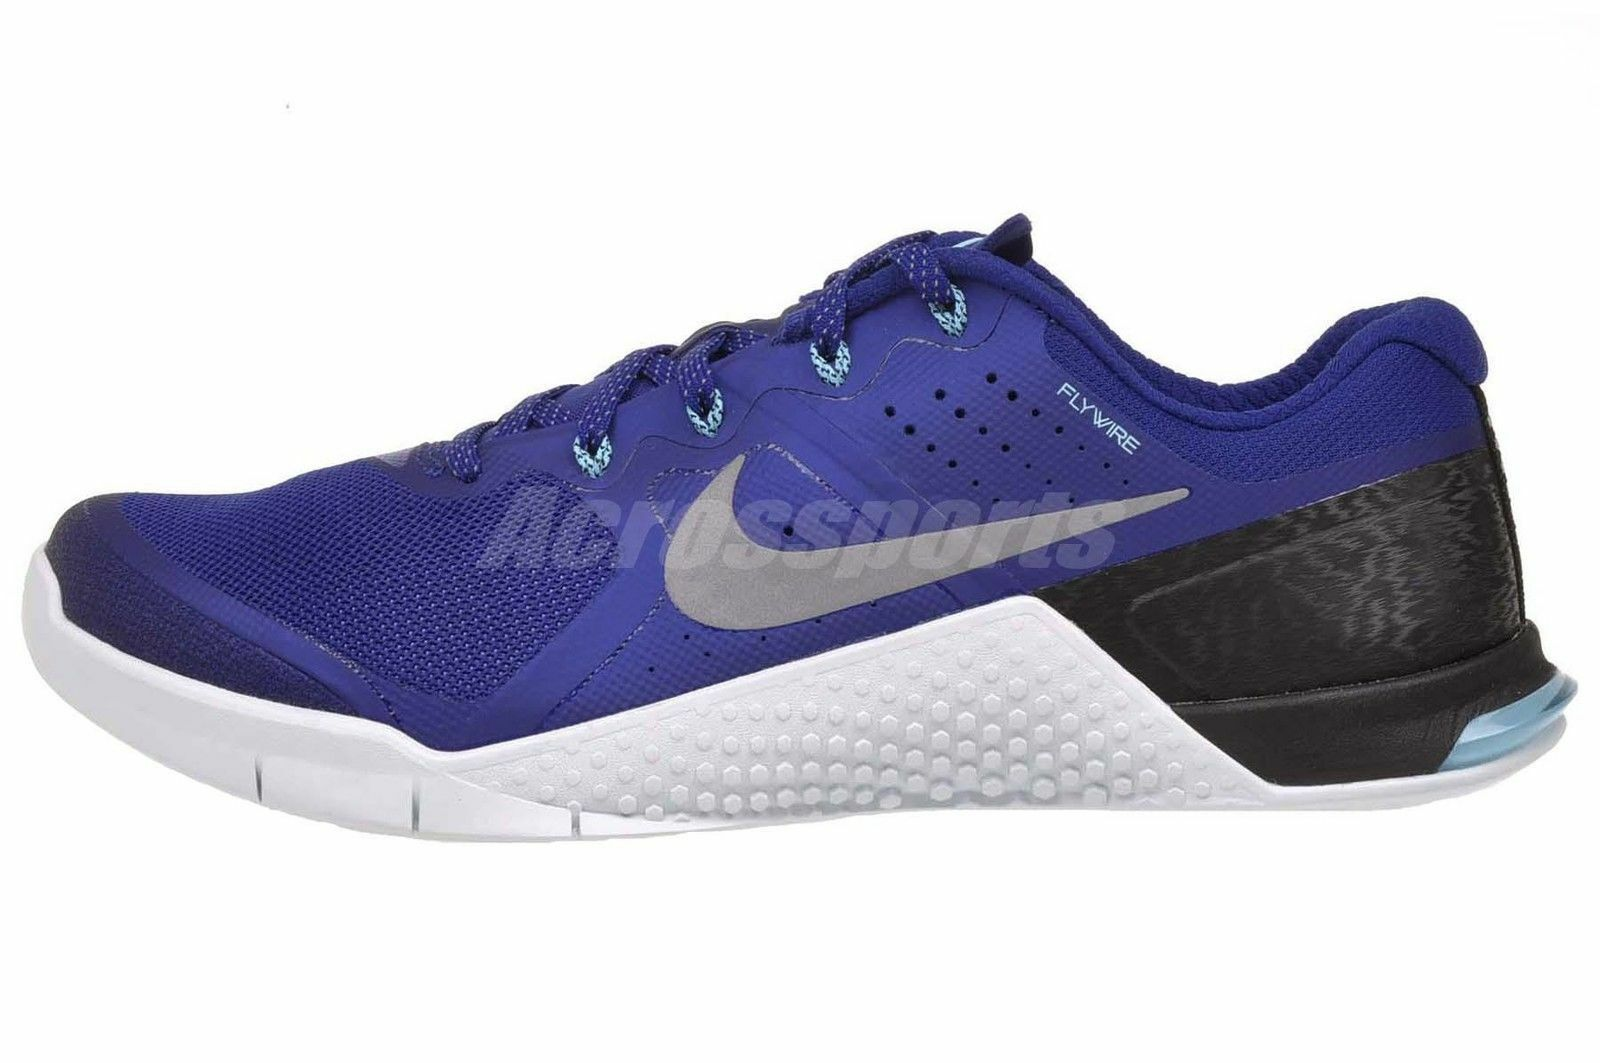 Nike Metcon 2 Amp Holiday Mens Cross Training shoes  835438-404 SIZE 13